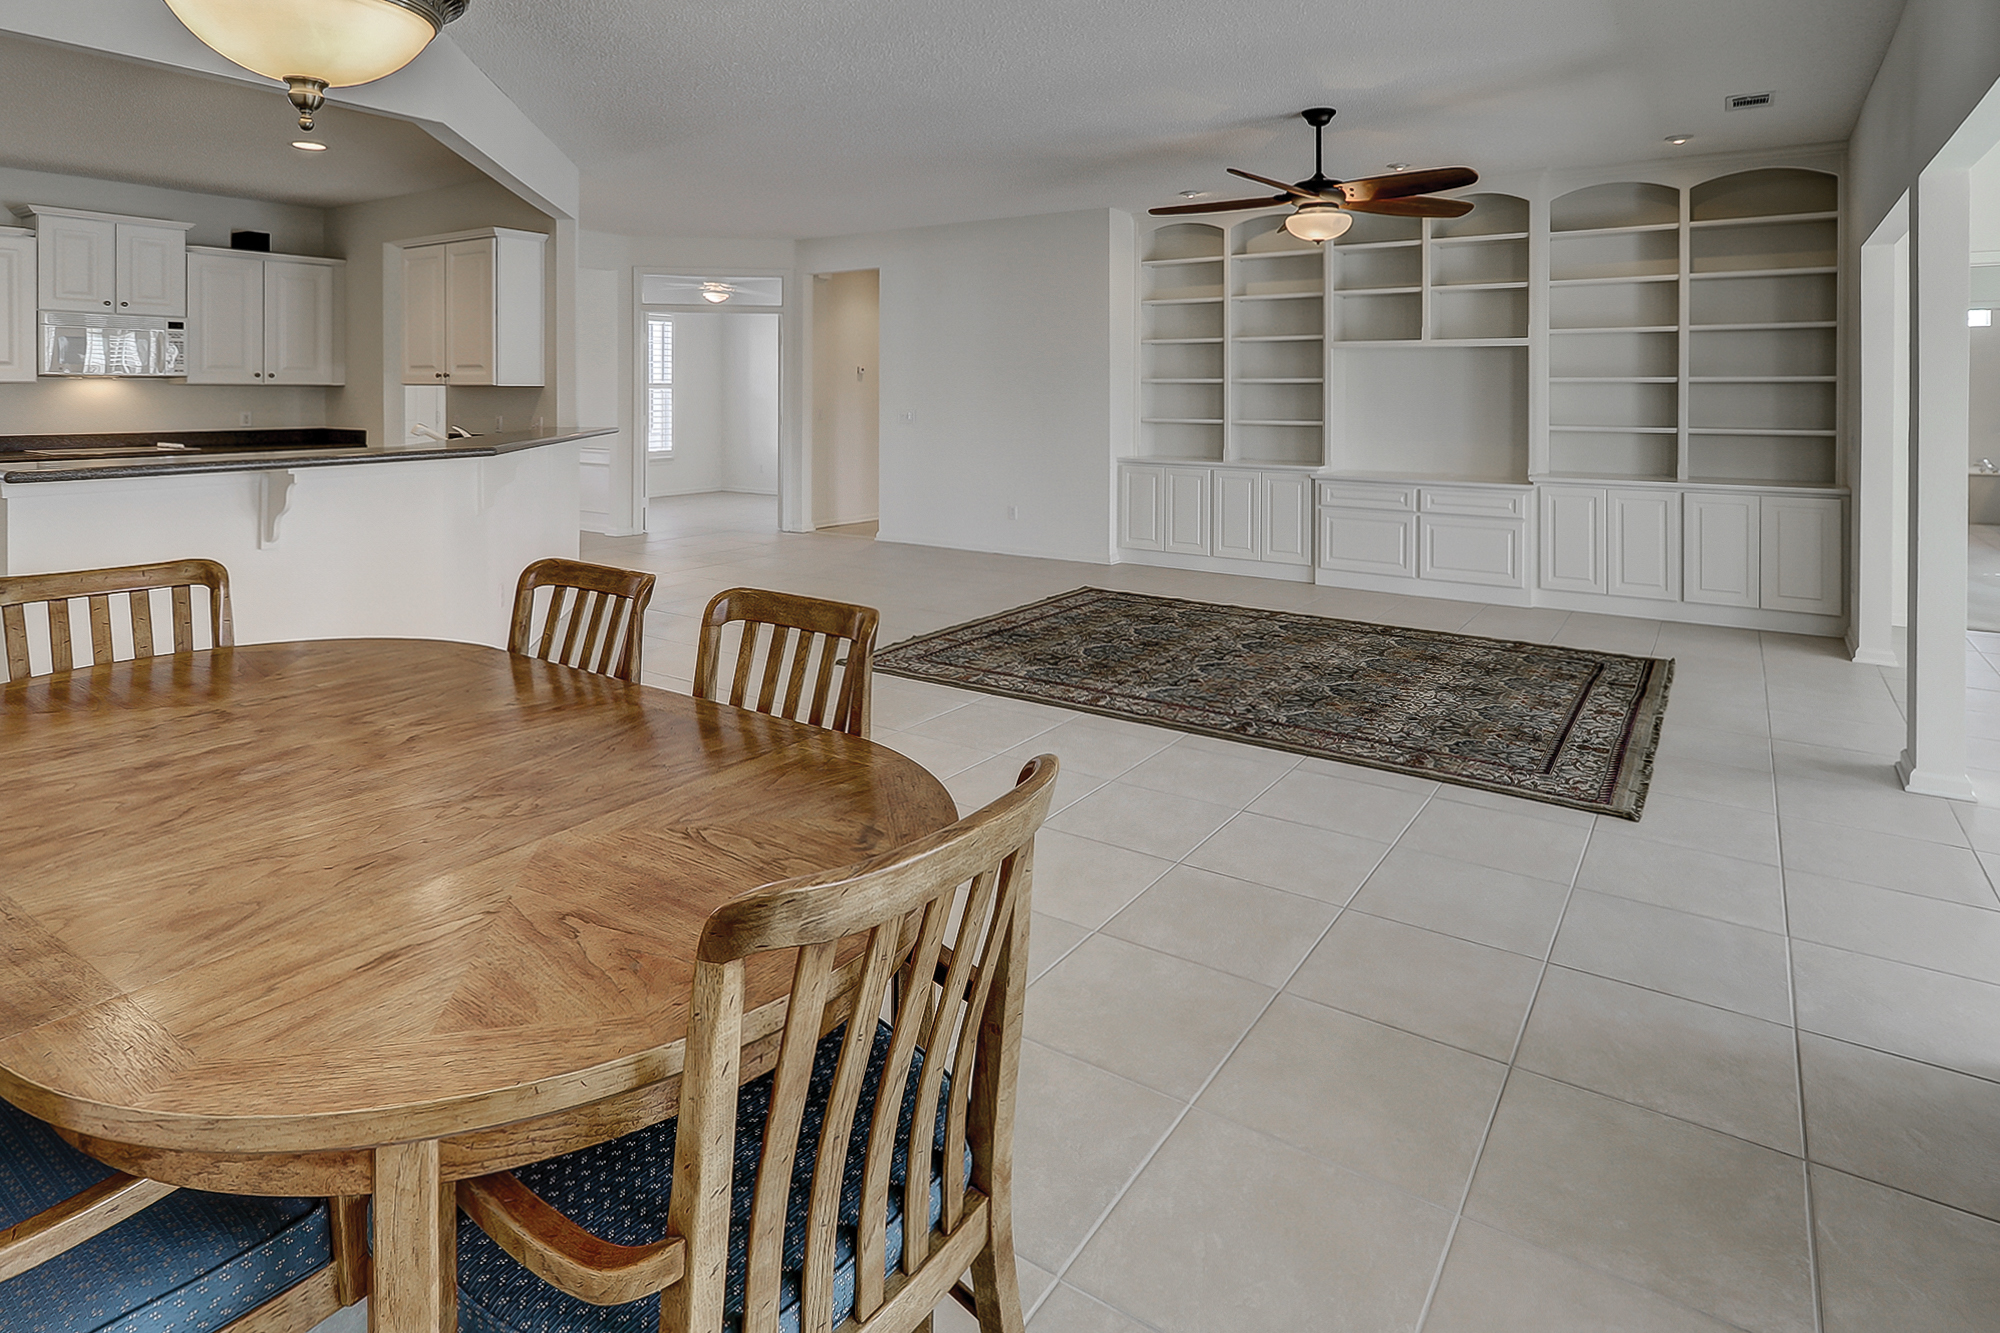 Tile floors and Plantation Shutters throughout this Chestnut Model for sale in Sun City Hilton Head